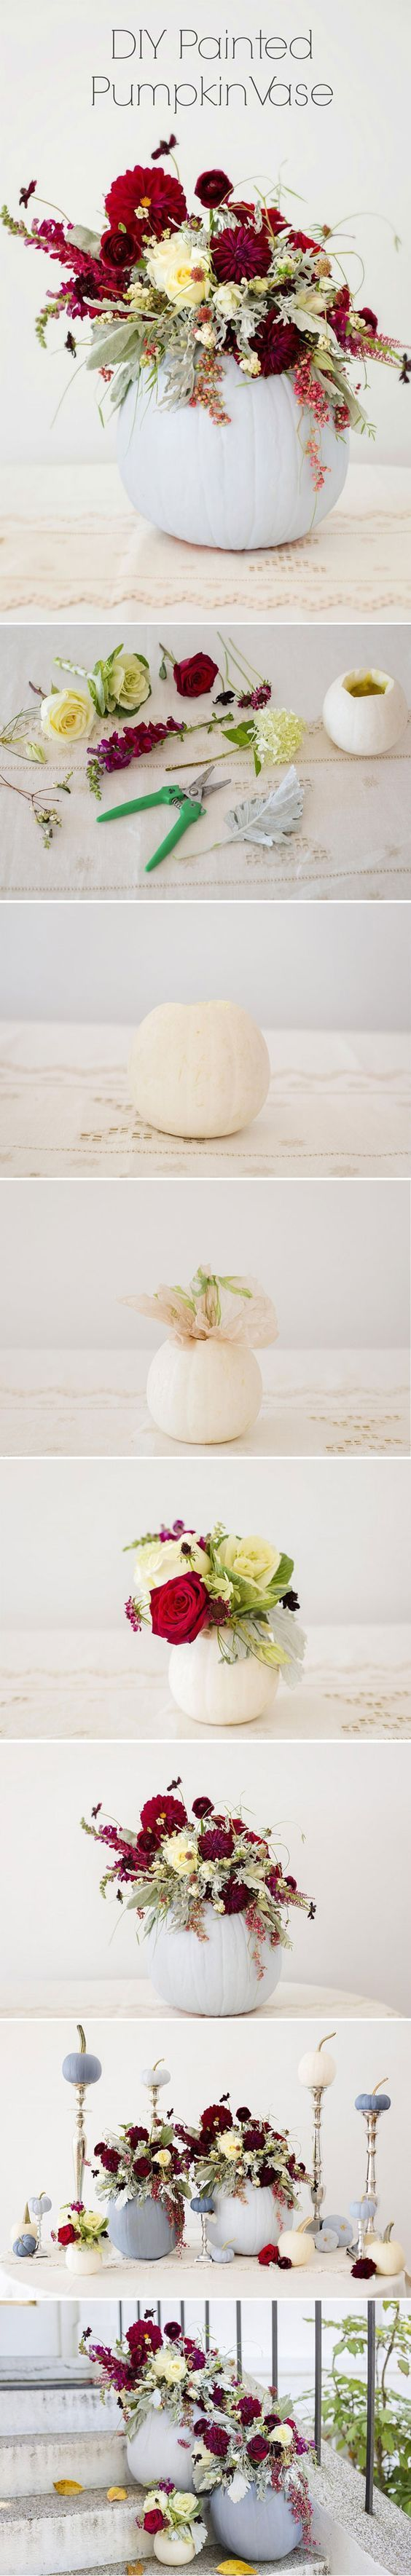 DIY painted pumpkin wedding vases ideas for Halloween weddings / http://www.himisspuff.com/diy-wedding-centerpieces-on-a-budget/21/